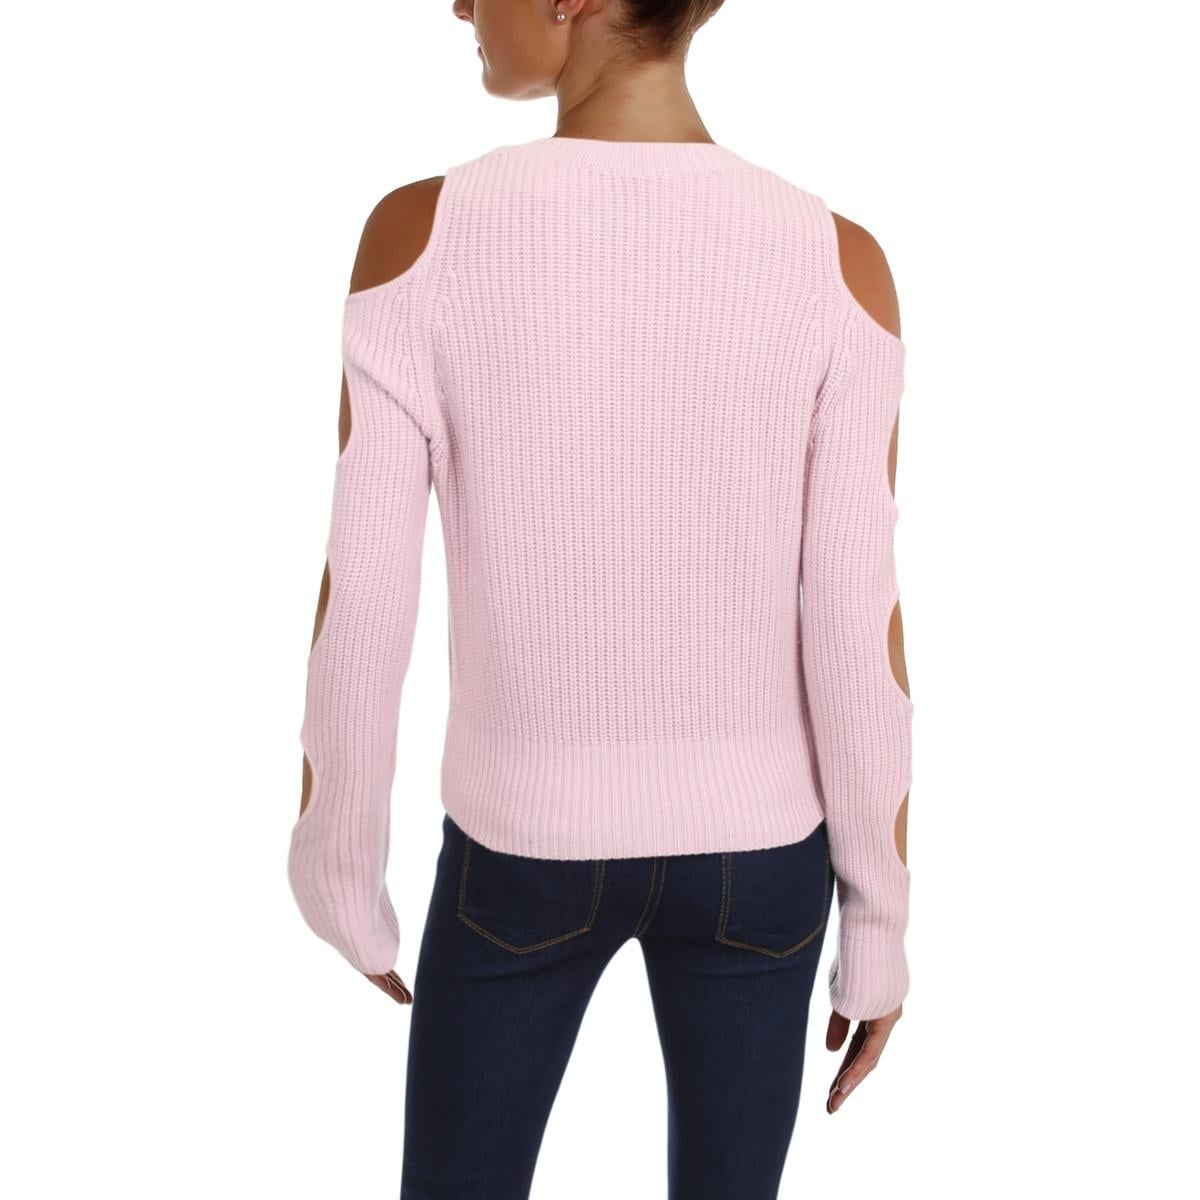 f13e67be9fb Shop Zoe Jordan Womens Galen Pullover Sweater Cold Shoulder Cut-Out Sleeves  - Free Shipping Today - Overstock - 23482893